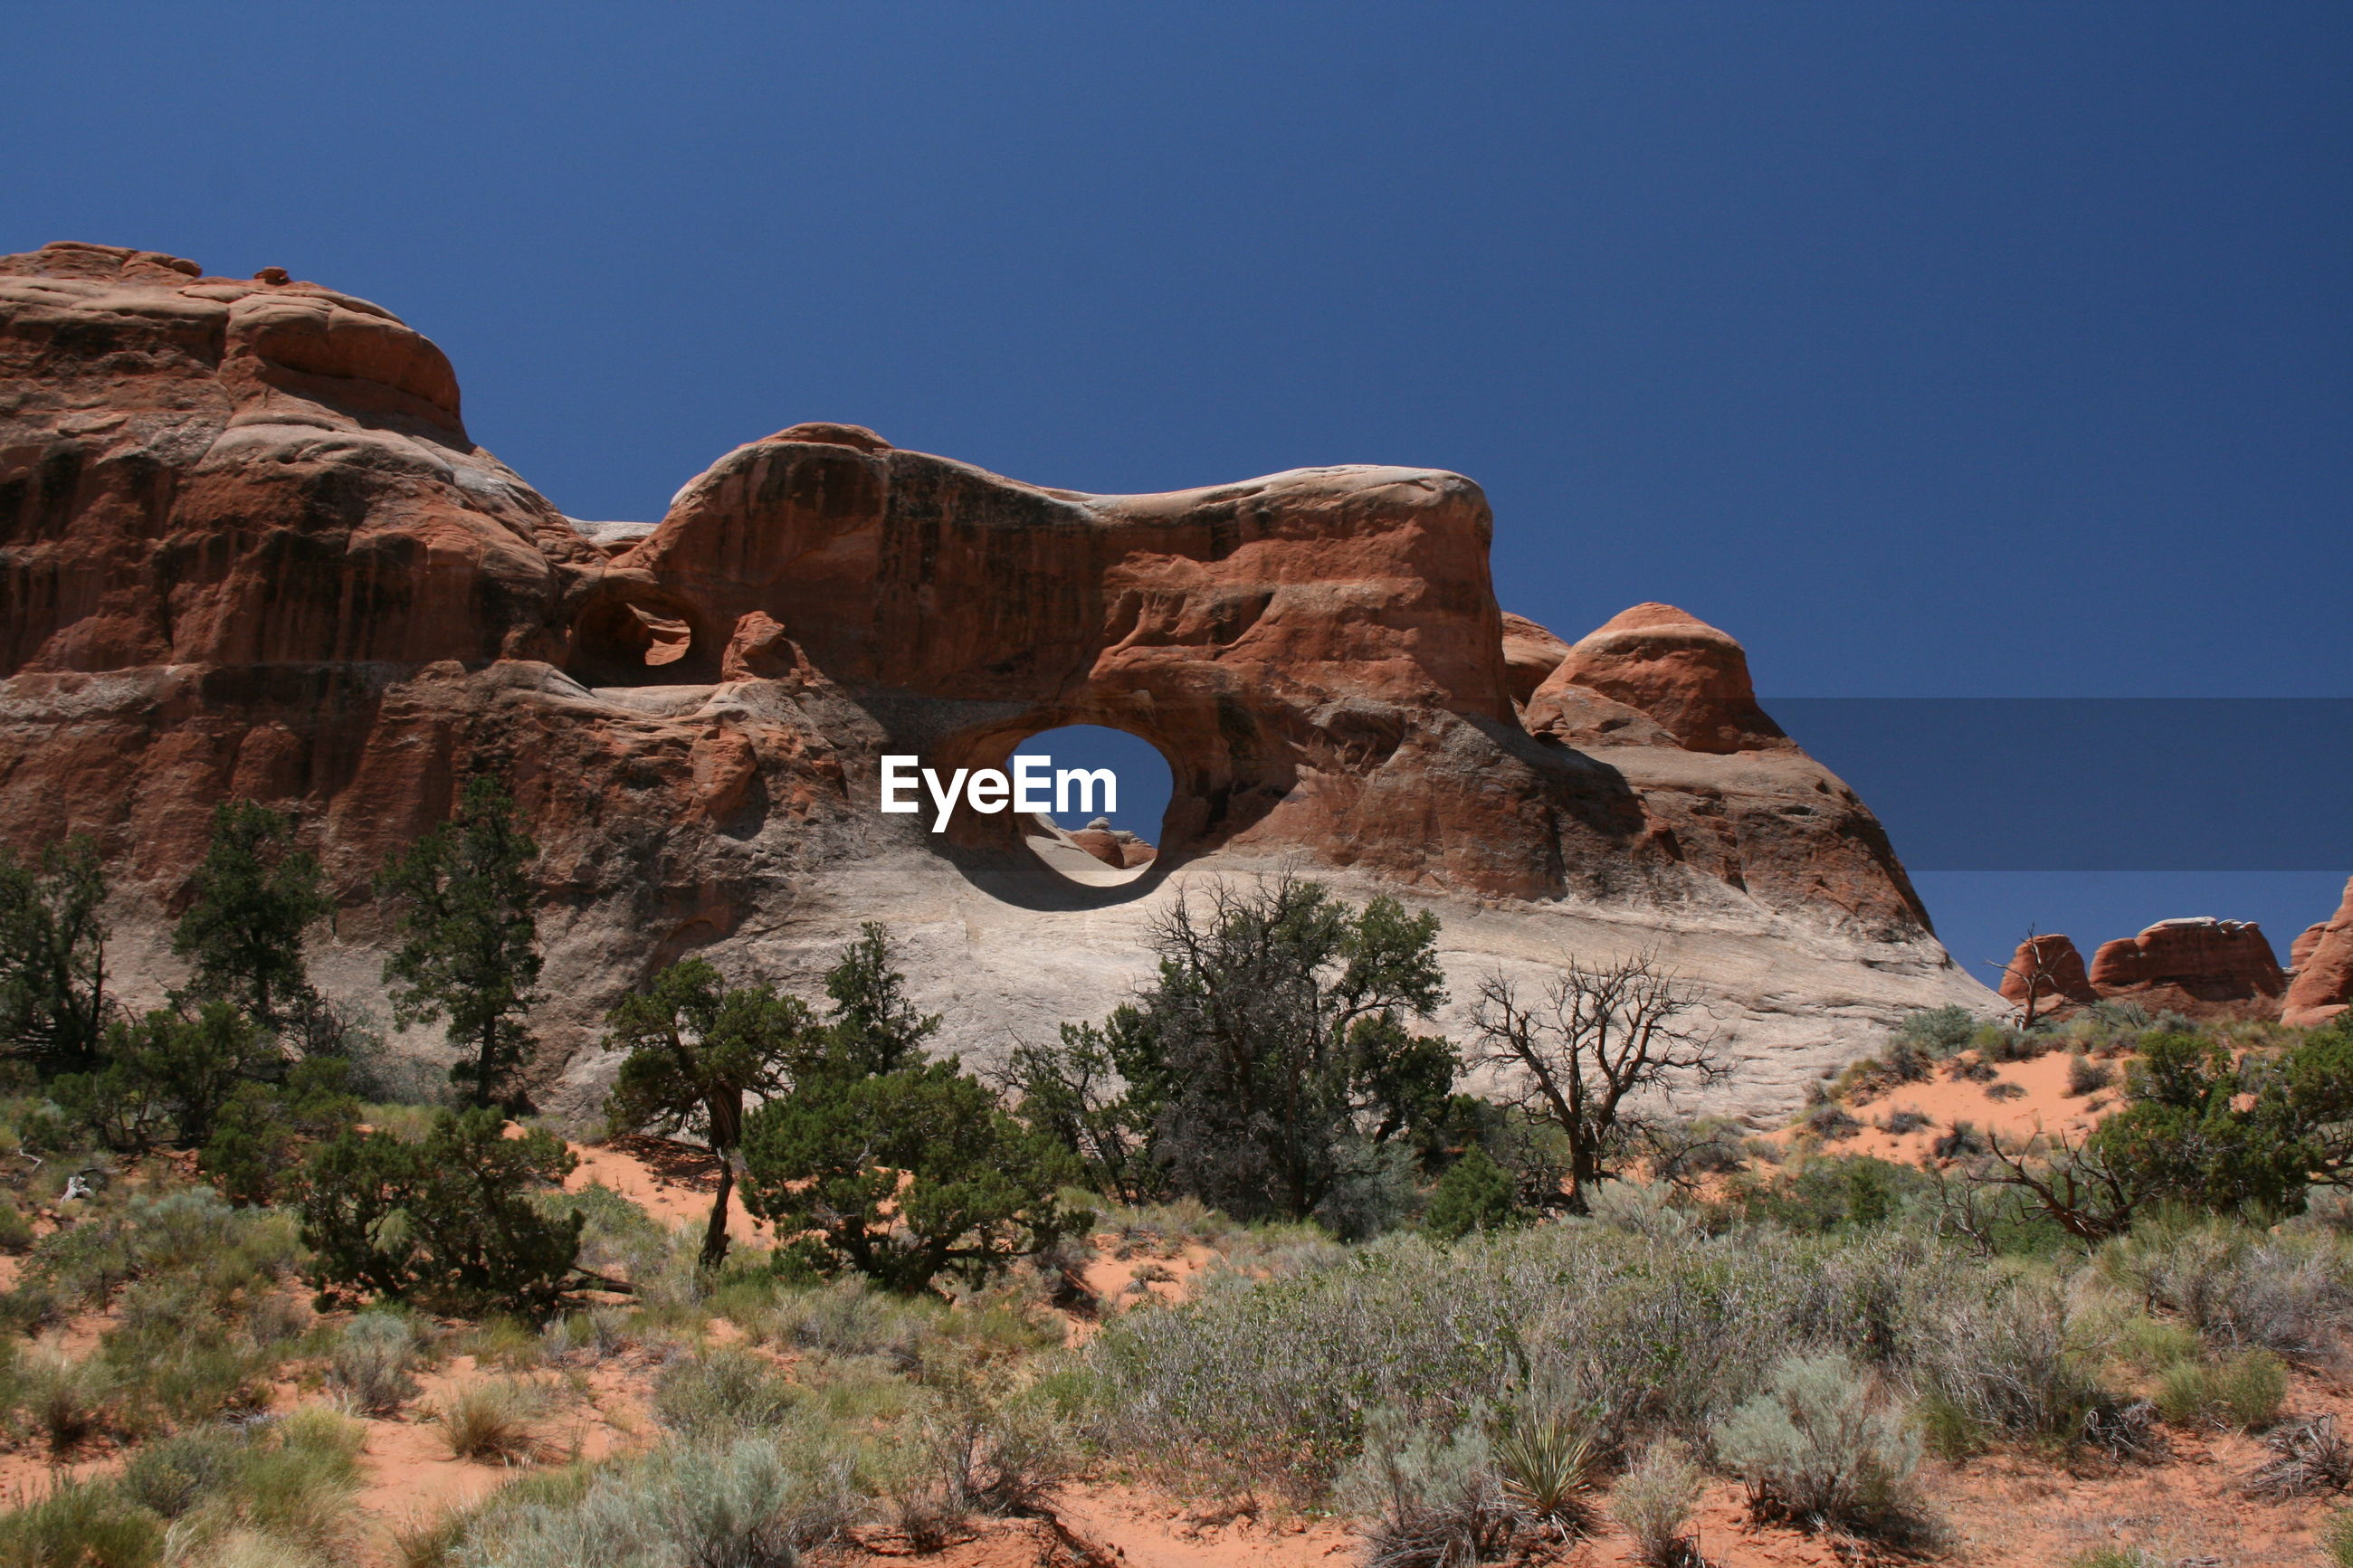 Rock formations against clear sky at arches national park